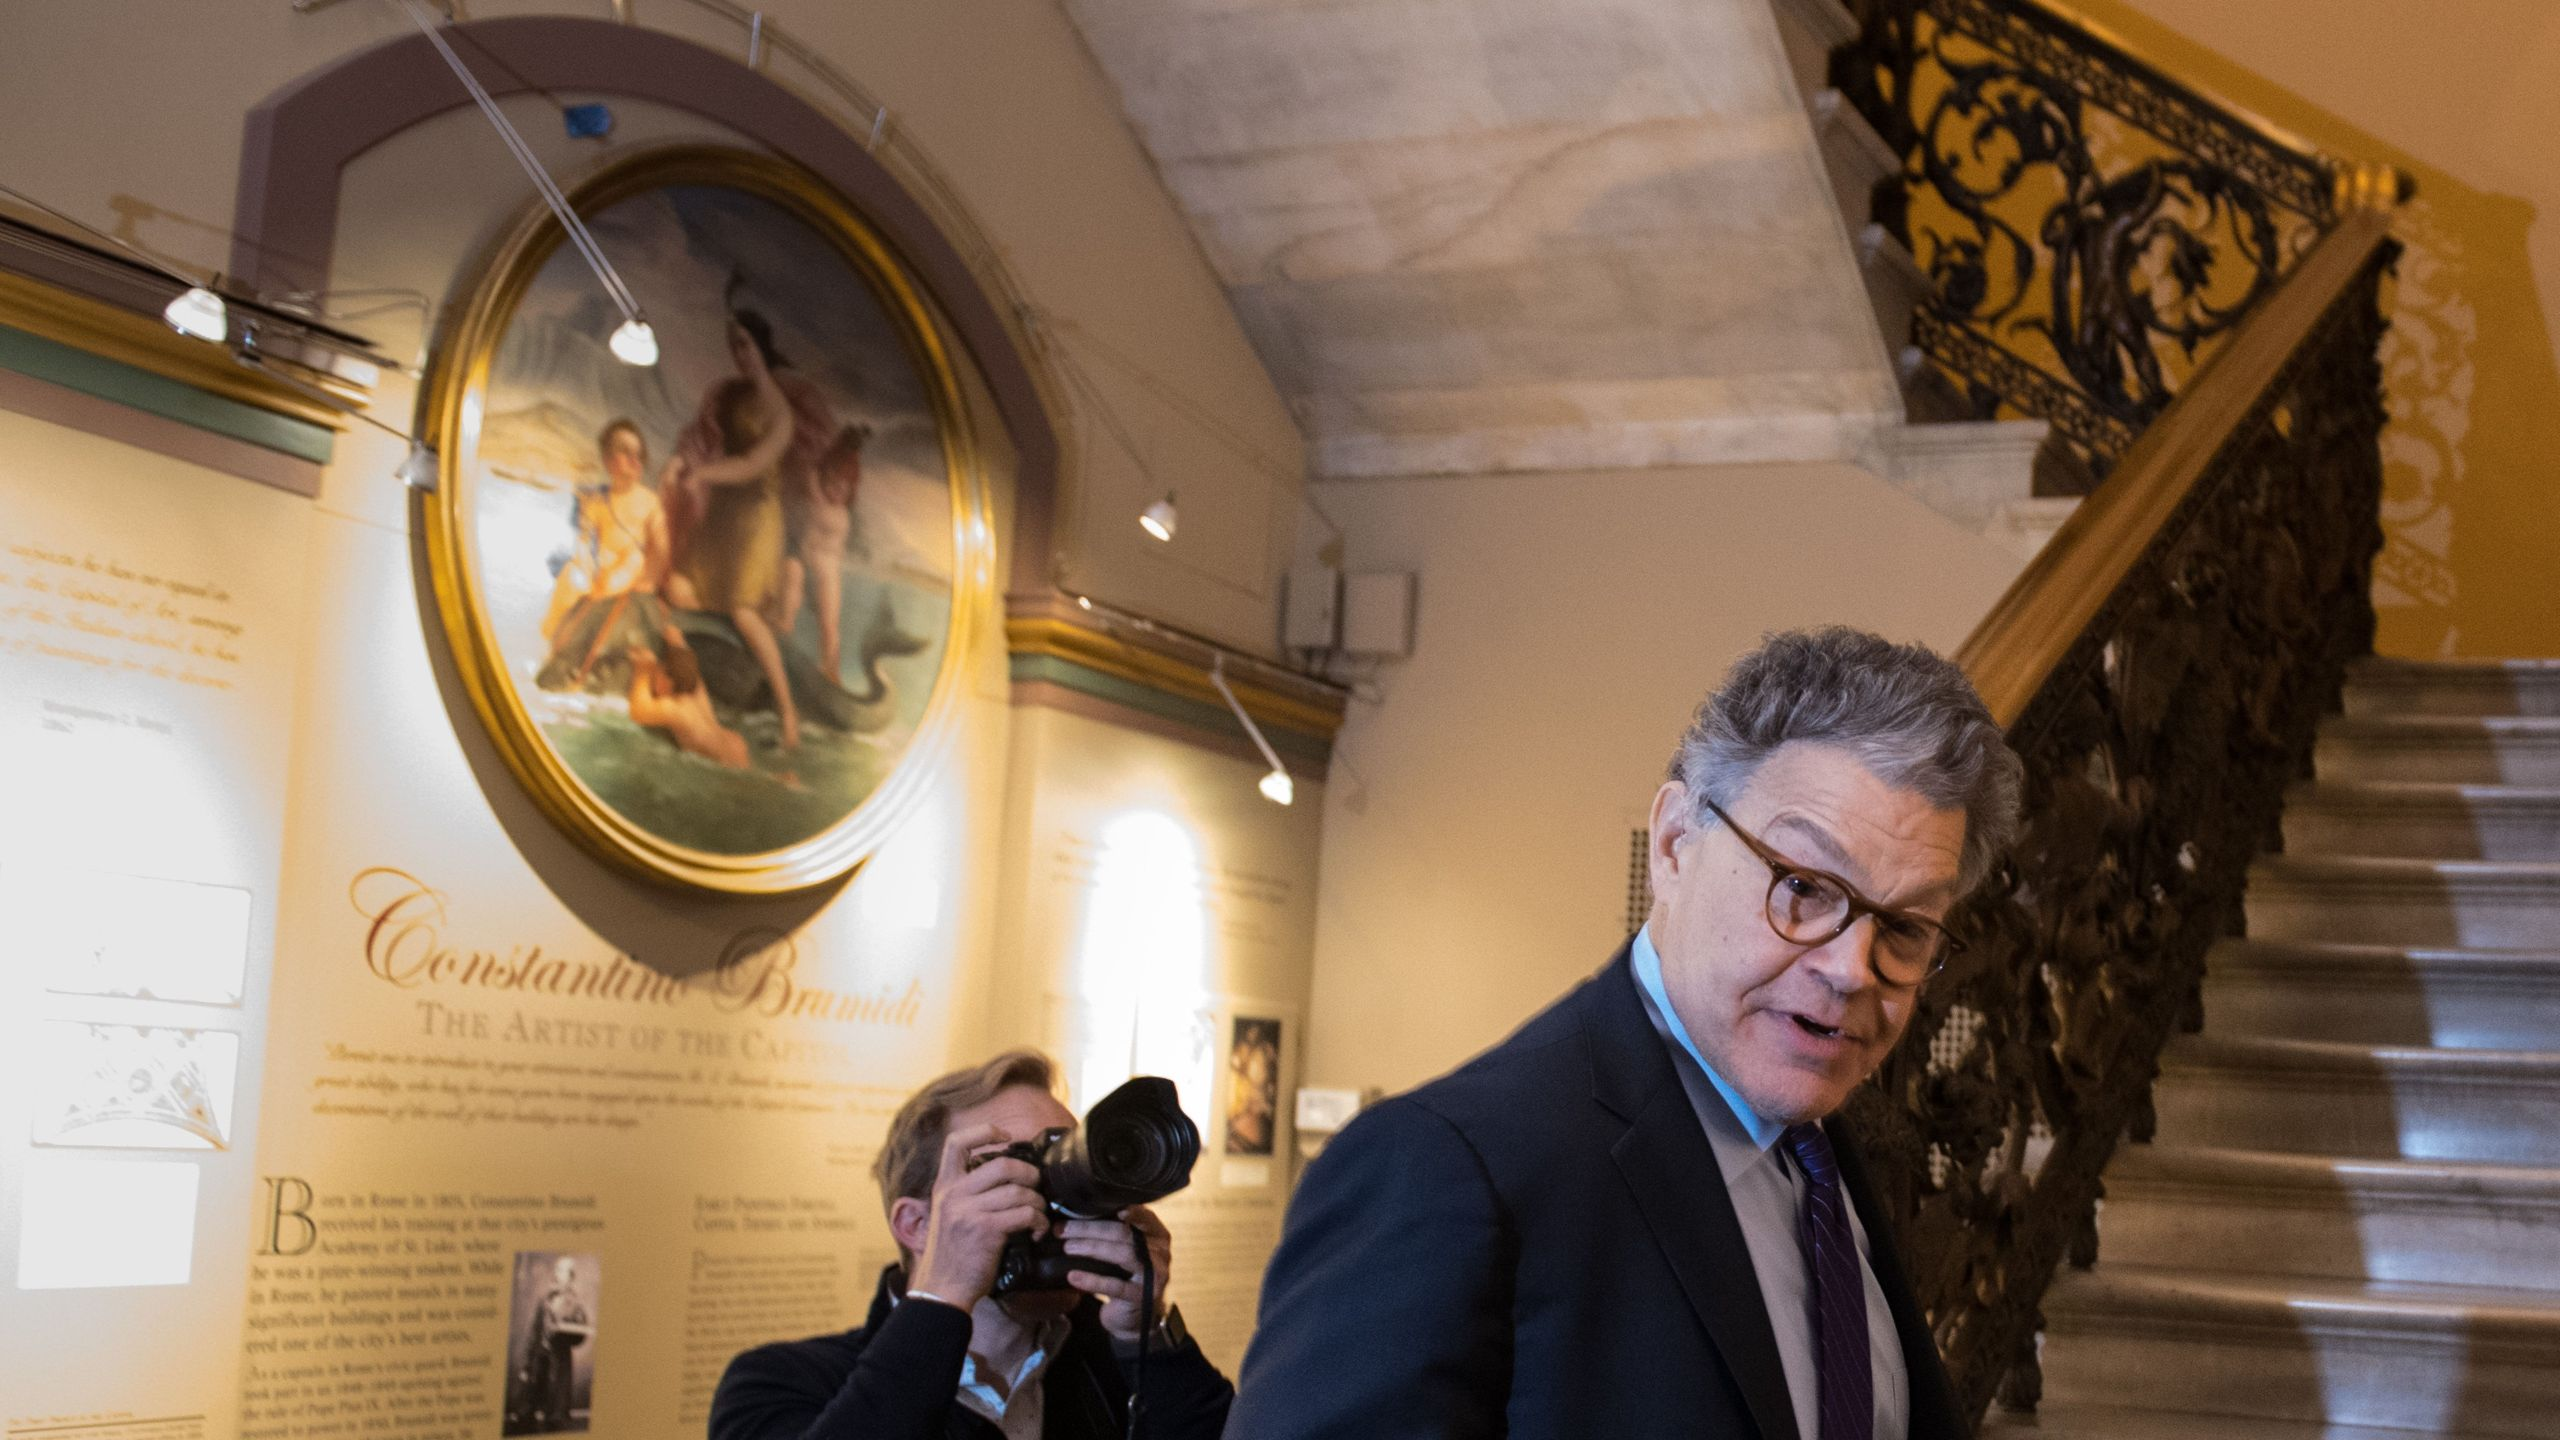 Senator Al Franken, D-MN, arrives at the Capitol on December 7, 2017. (Credit: Mandel Ngan/AFP/Getty Images)